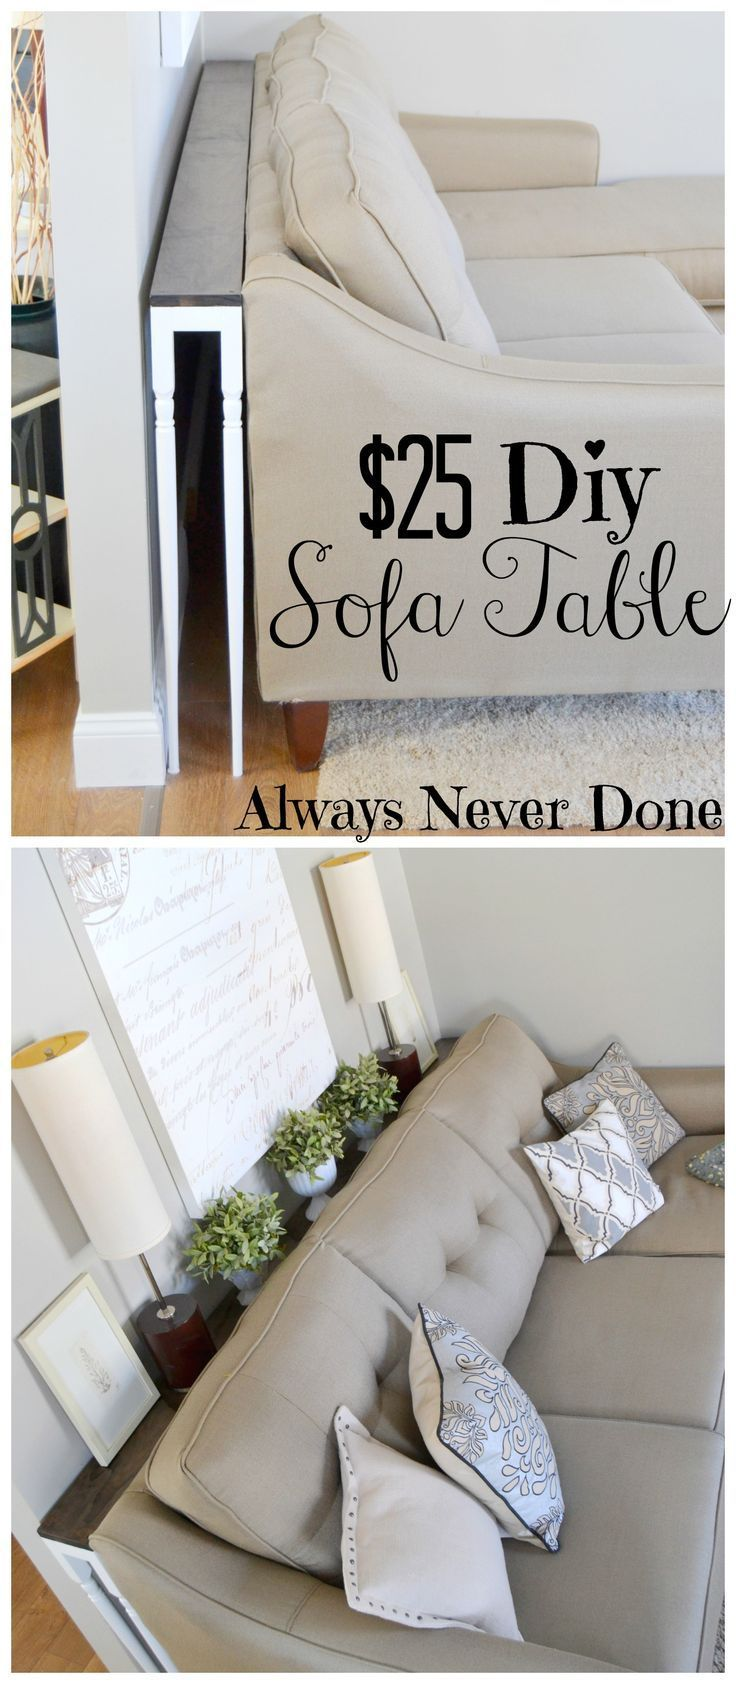 DIY Sofa Table For 25 Using Stair Rails As Legs Makes It Easy To Access Plugs Behind The Couch Too So They Dont Go Waste